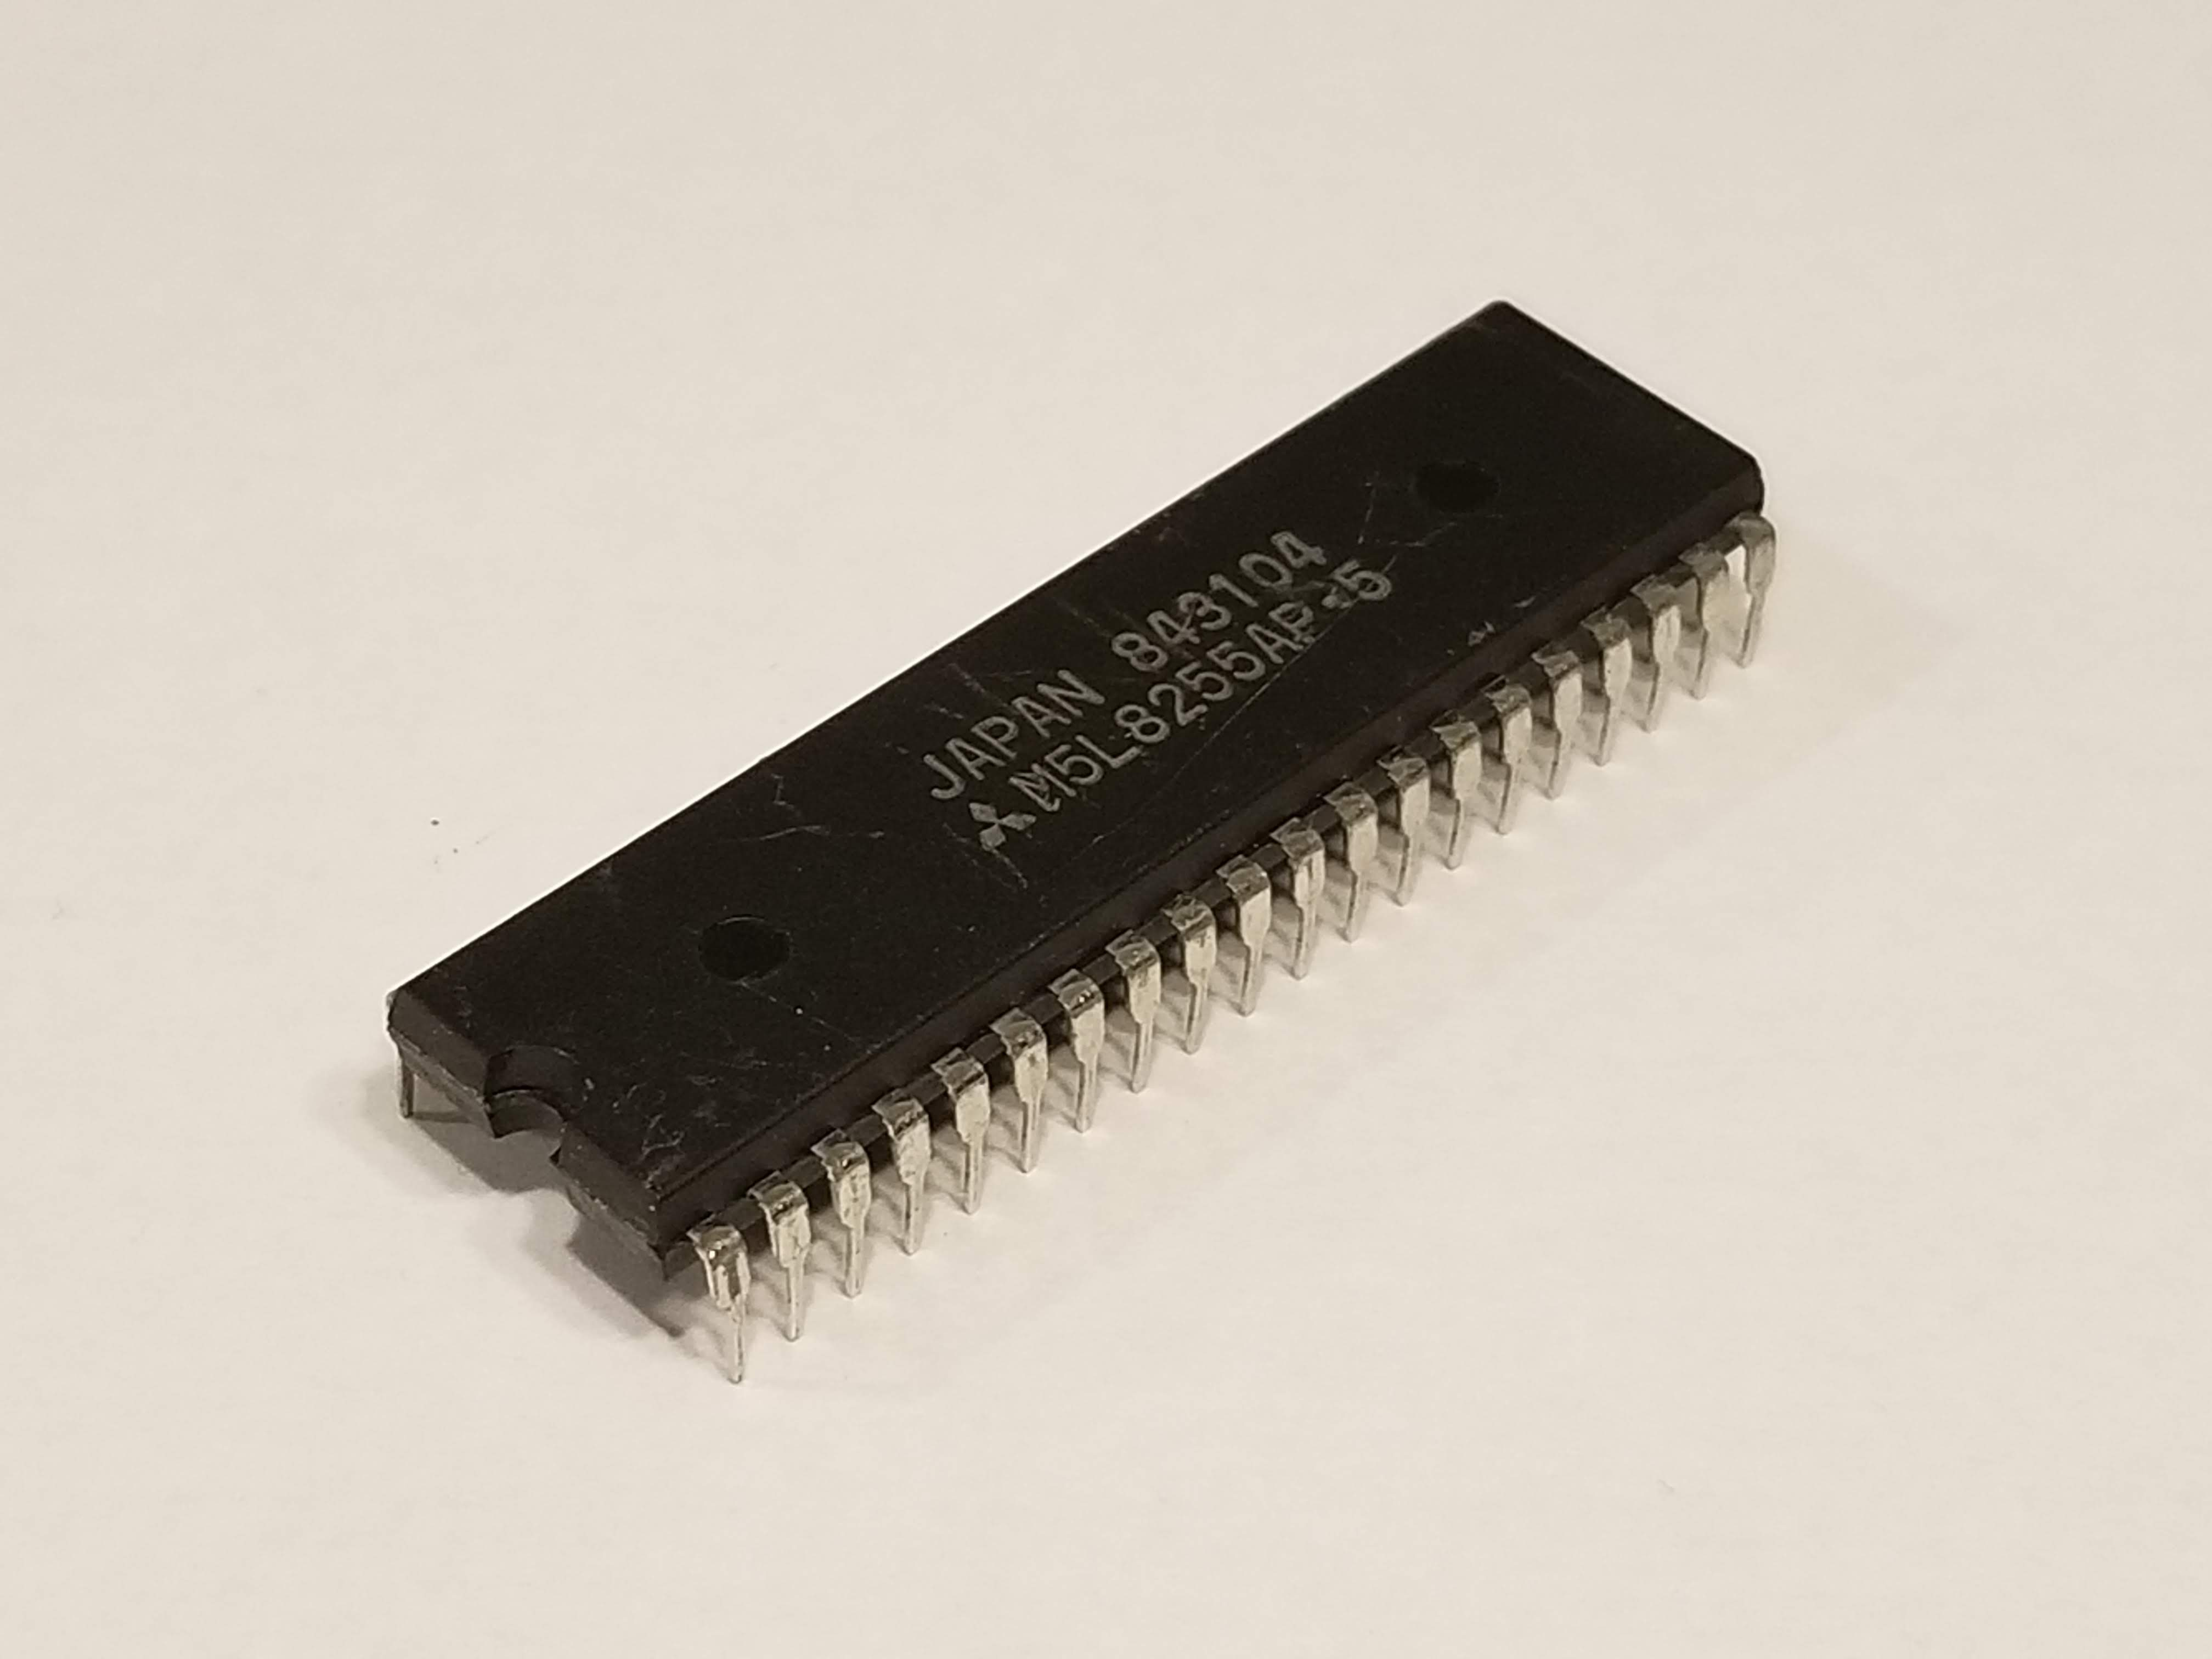 Picture of M5L8255AP-5 Programmable Peripheral Interface